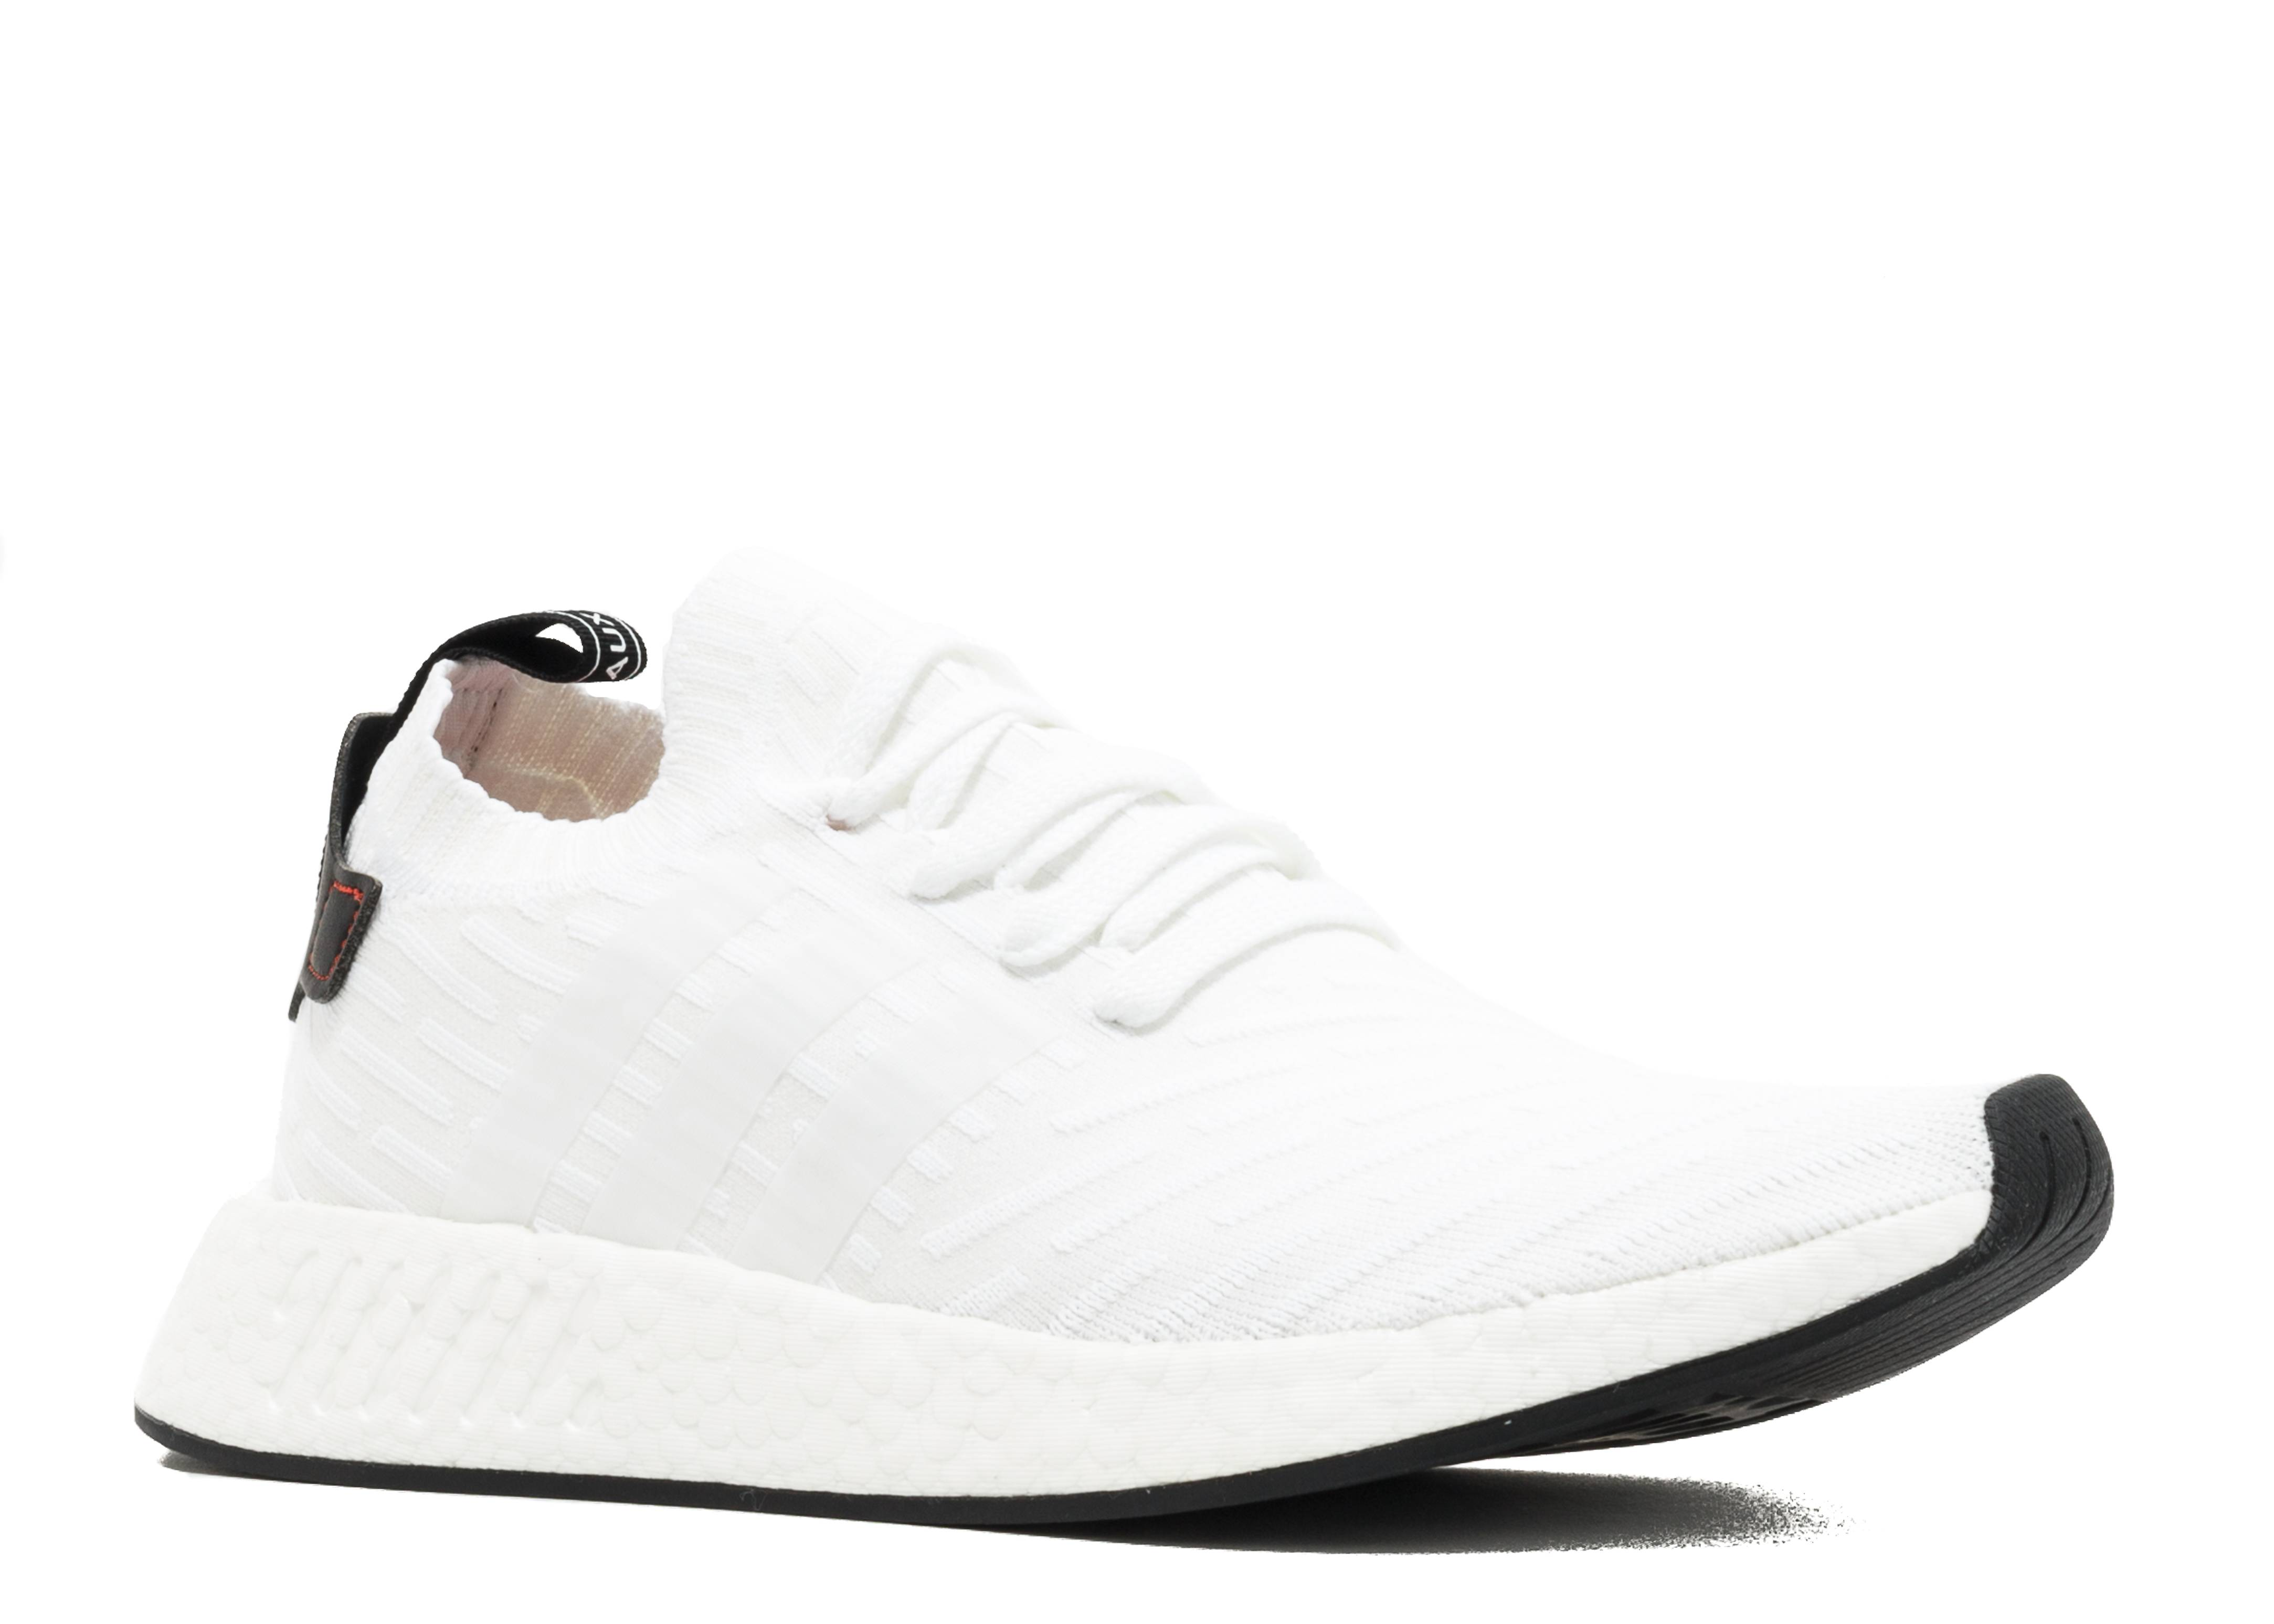 6e682d12cd64f NMD R2 PK - Adidas - BY3015 - white core black-red